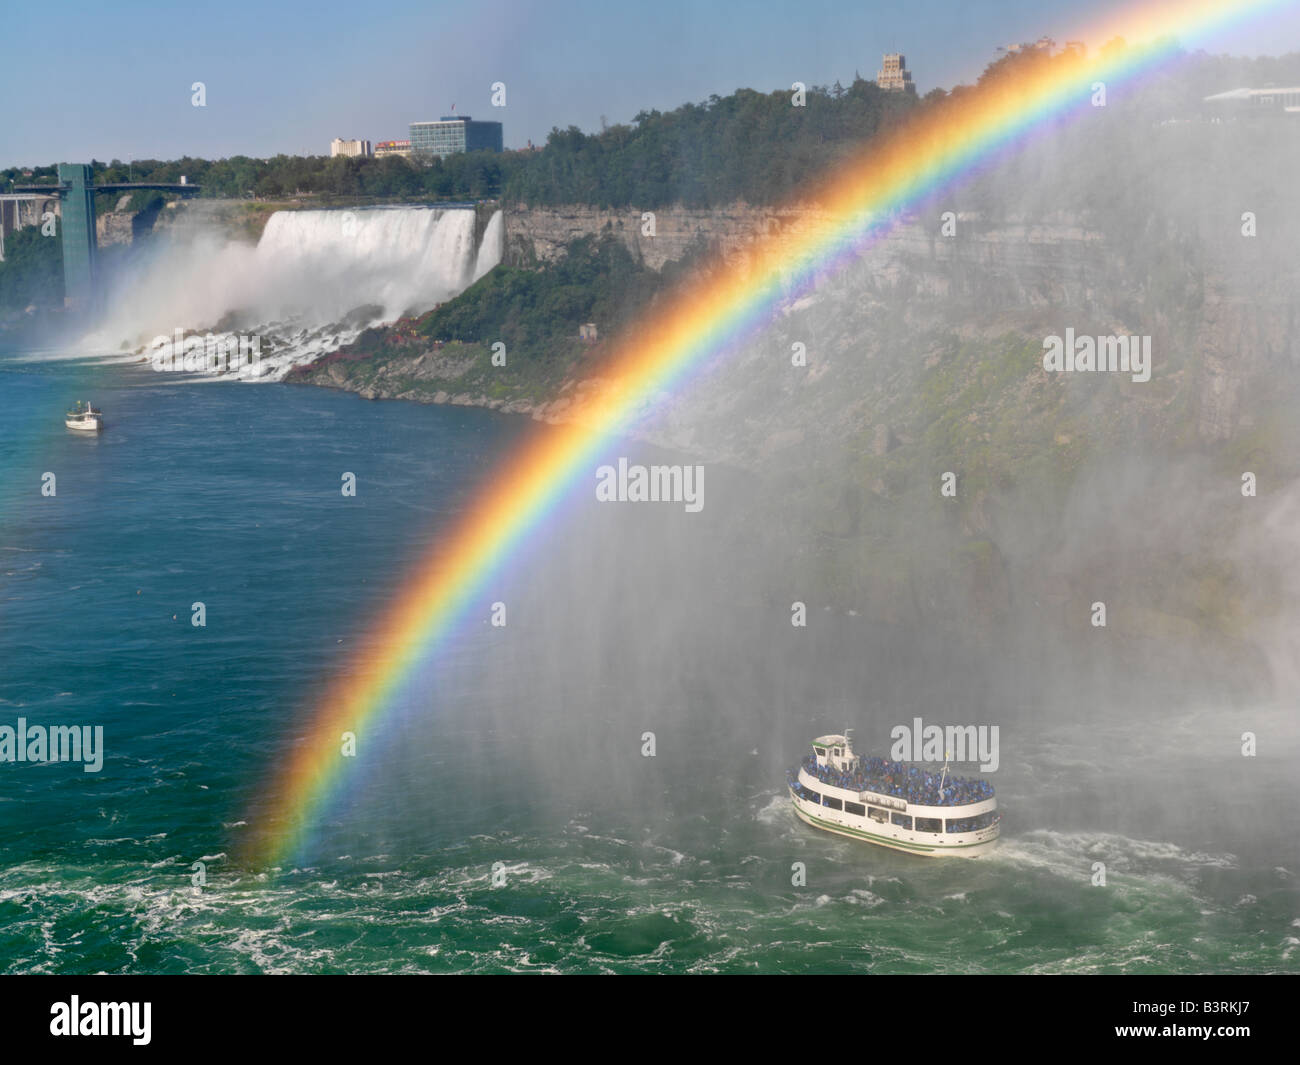 Canada,Ontario,Niagara Falls,Maid of the Mist tour boat approaching the American Falls with a rainbow - Stock Image